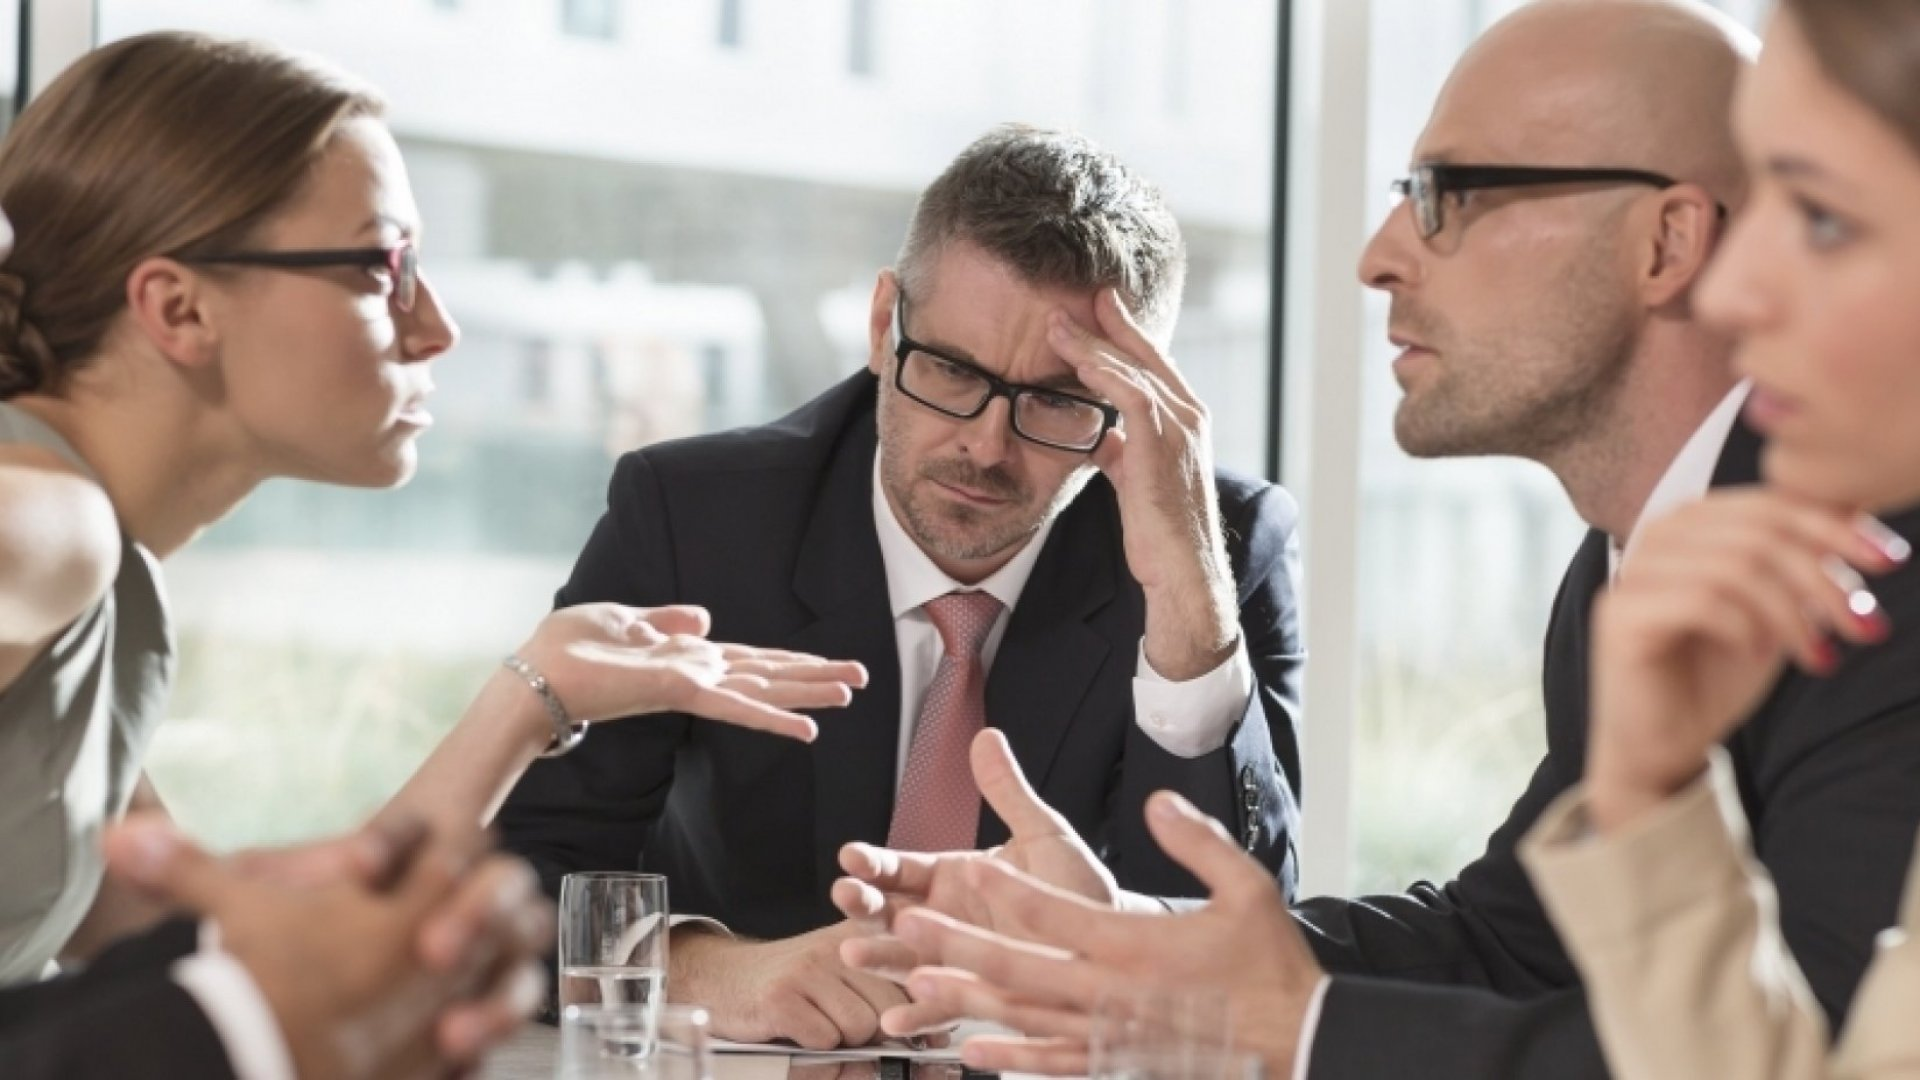 How to Recognize the Warning Signs of a Serious Workplace Conflict